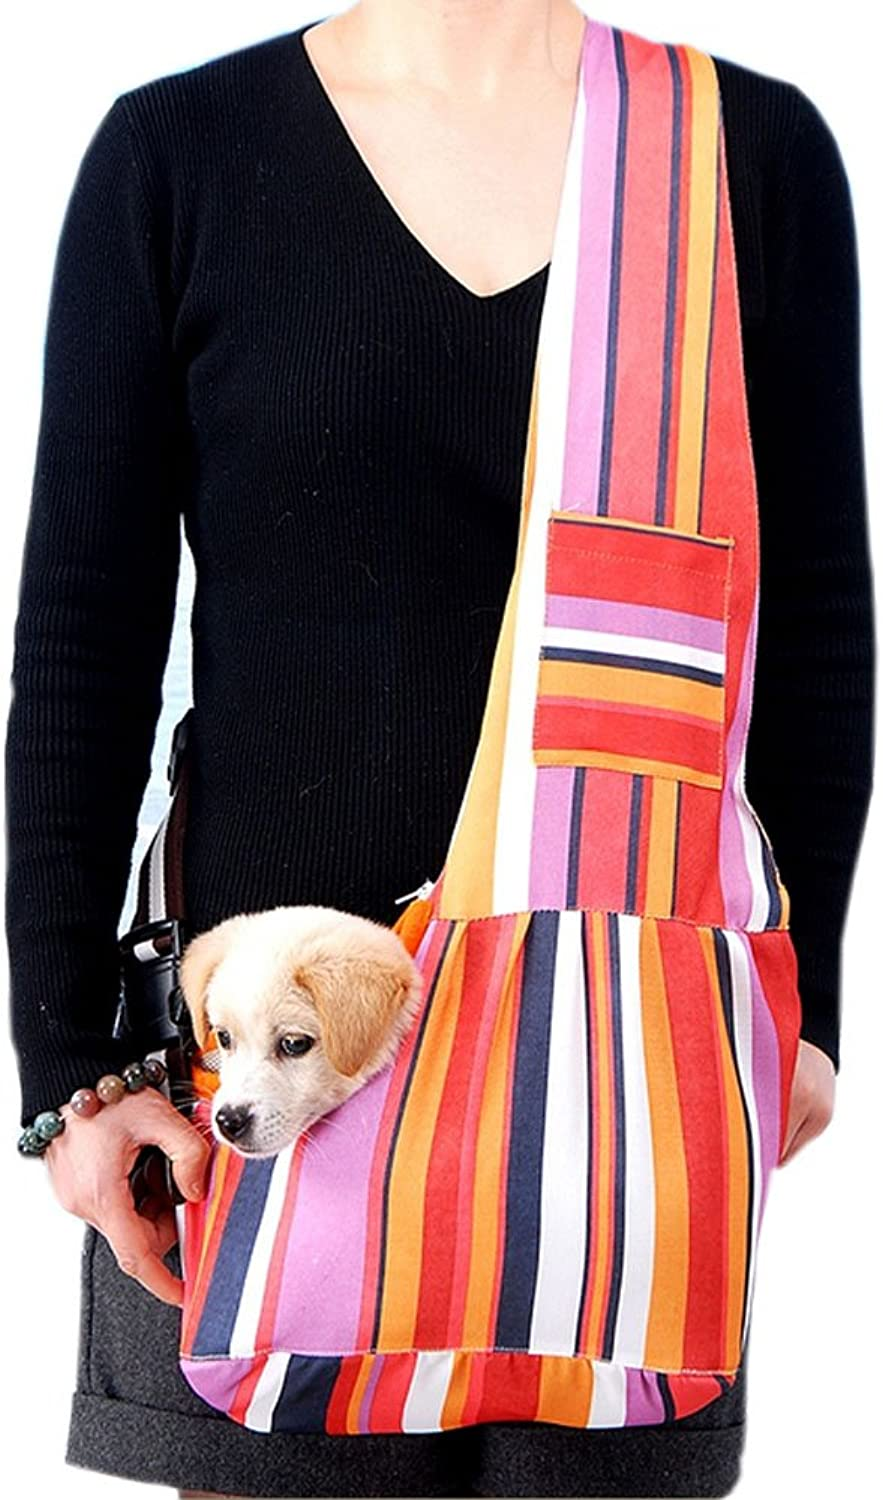 [Stripe] Portable Oxford Fabric Pet Carrier Shoulder Bag for Dogs and Cats